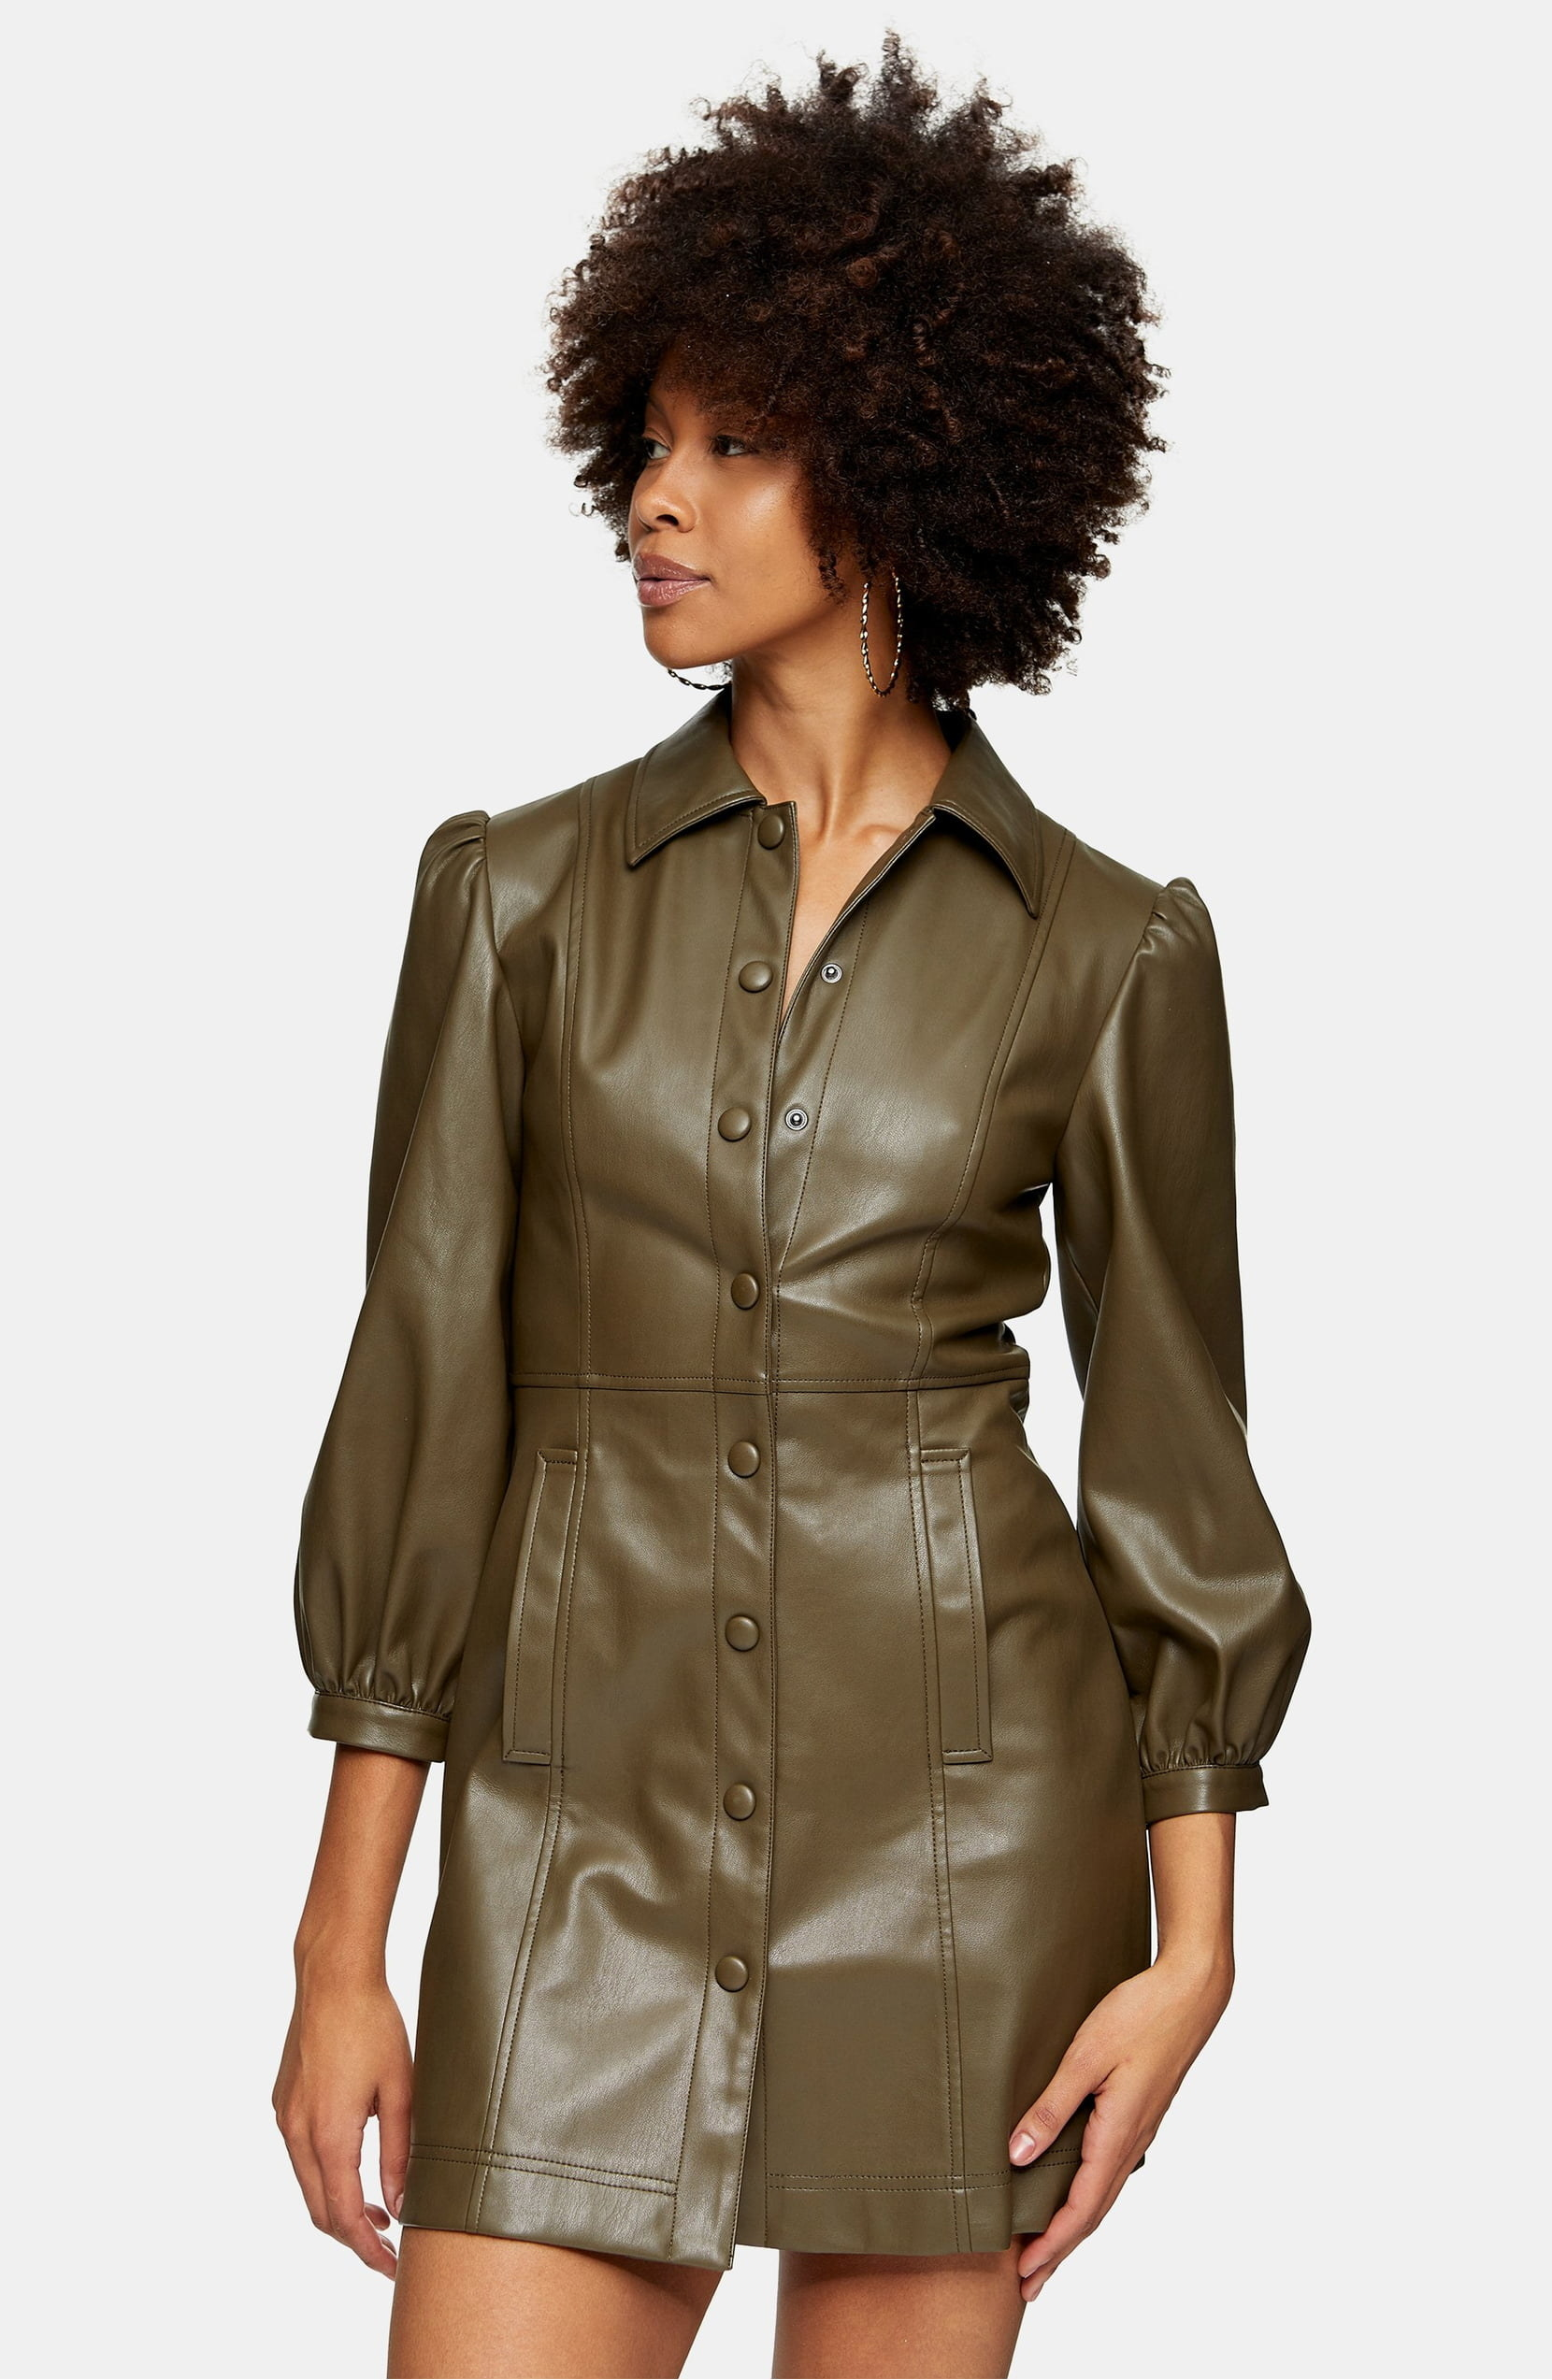 A model wearing the Topshop Long Sleeve Faux Leather Shirtdress.